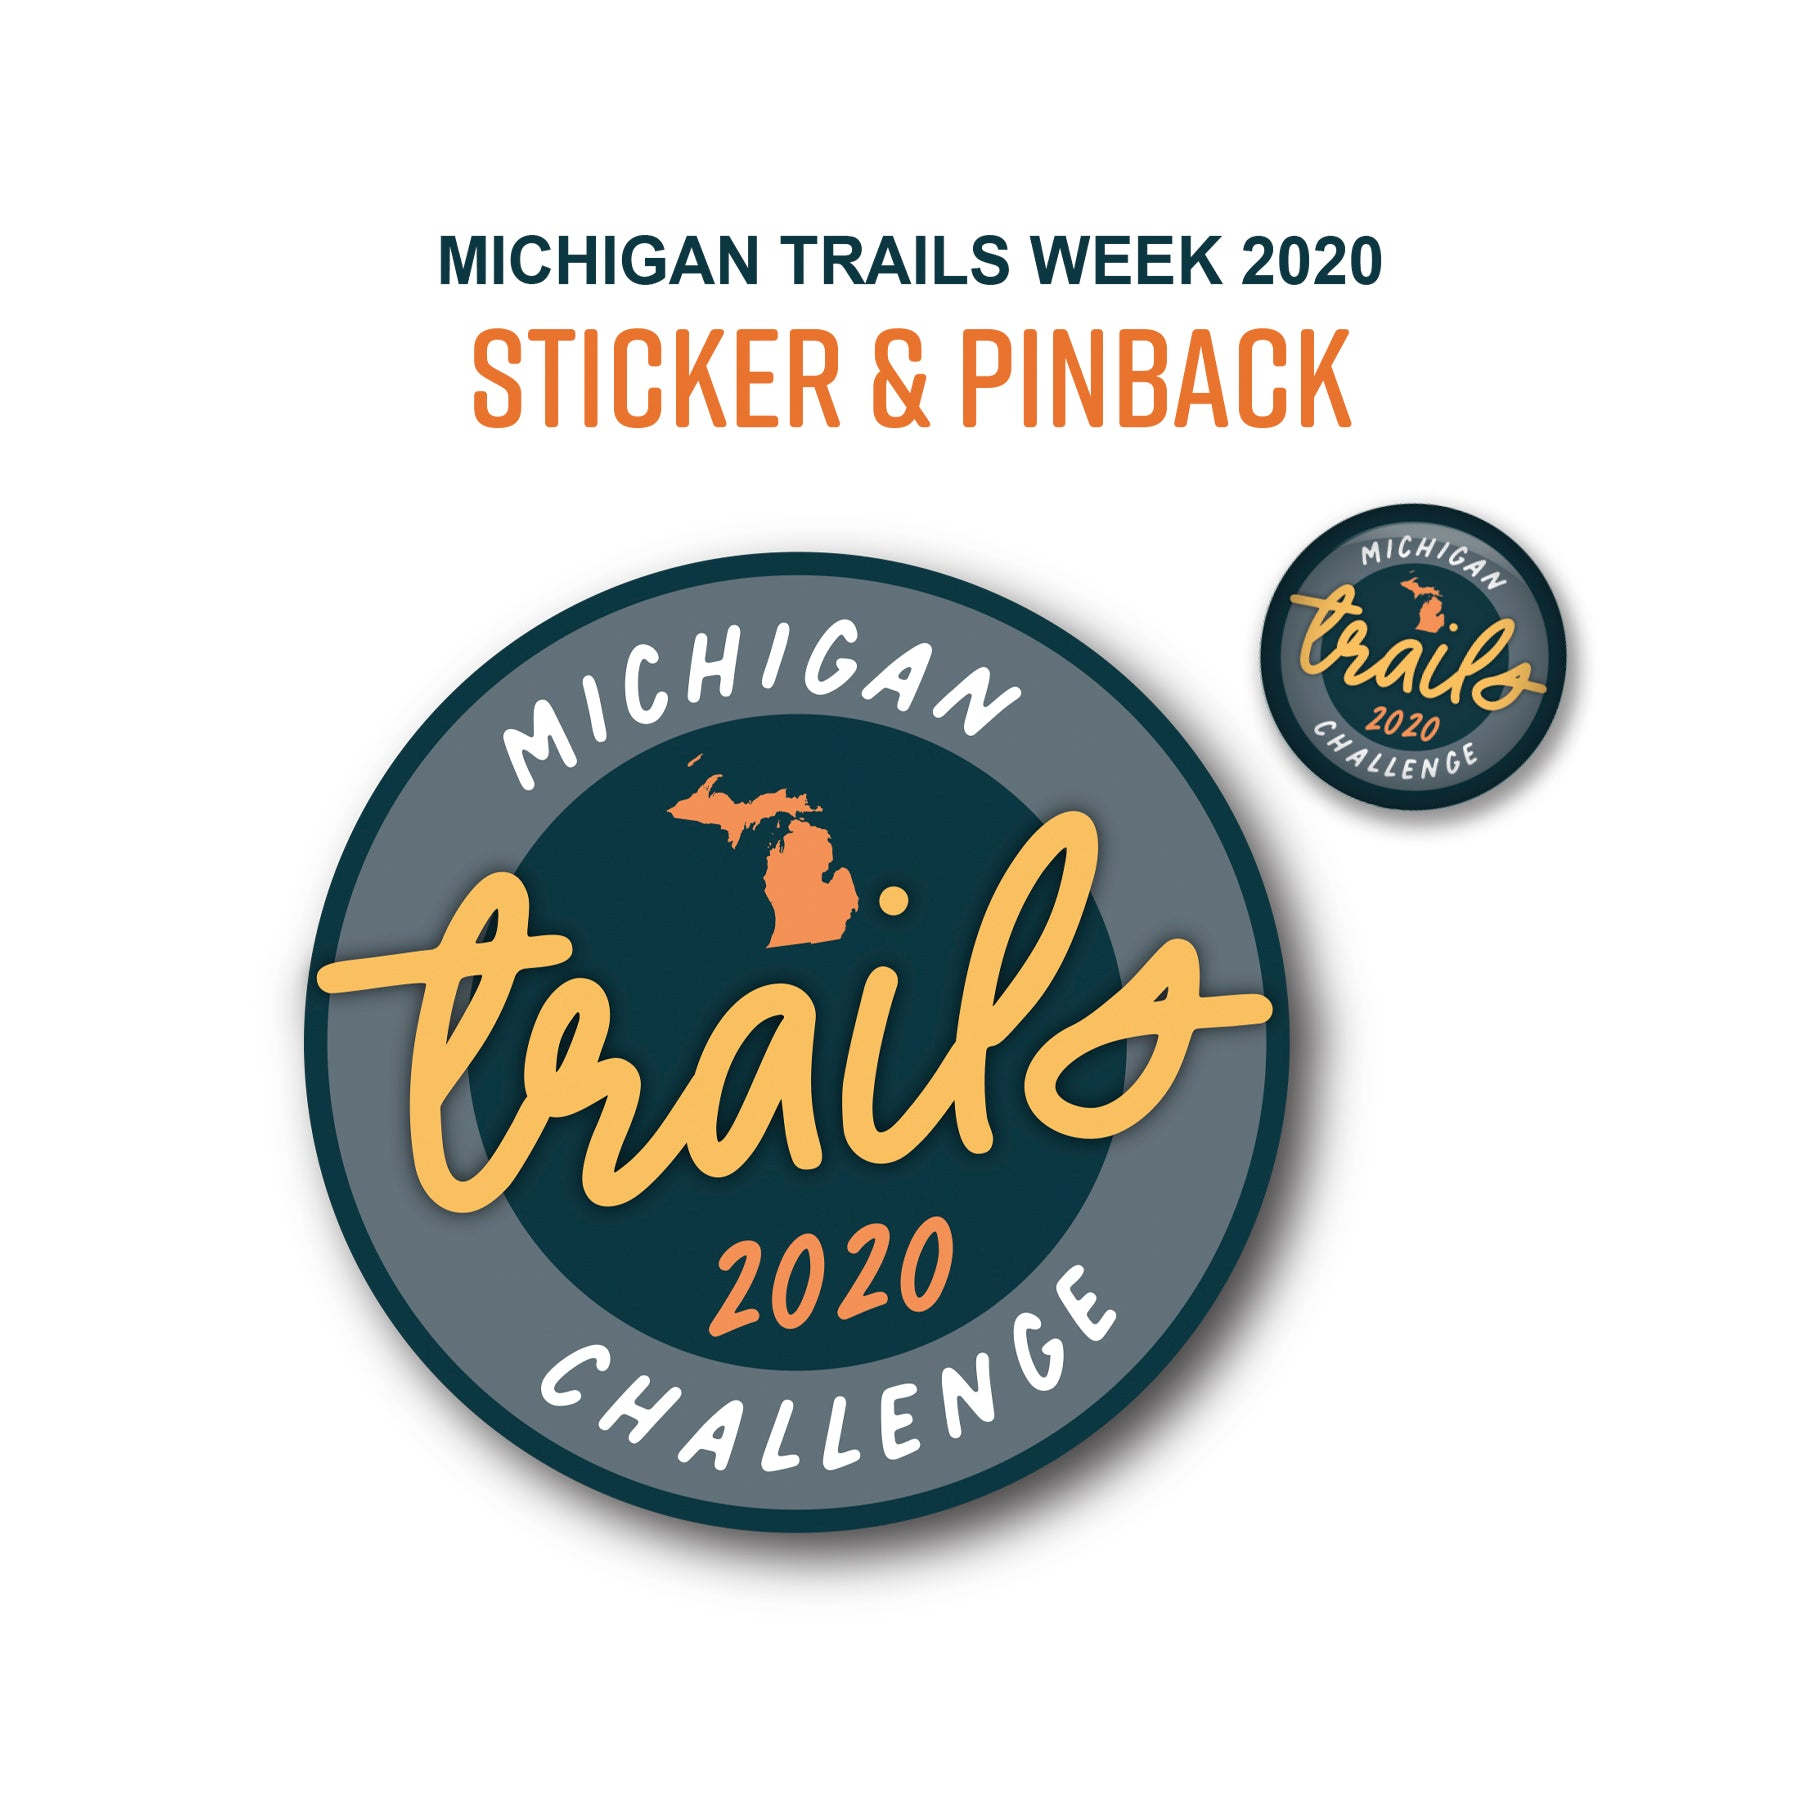 Michigan Trails Week Sticker & Pinback Set